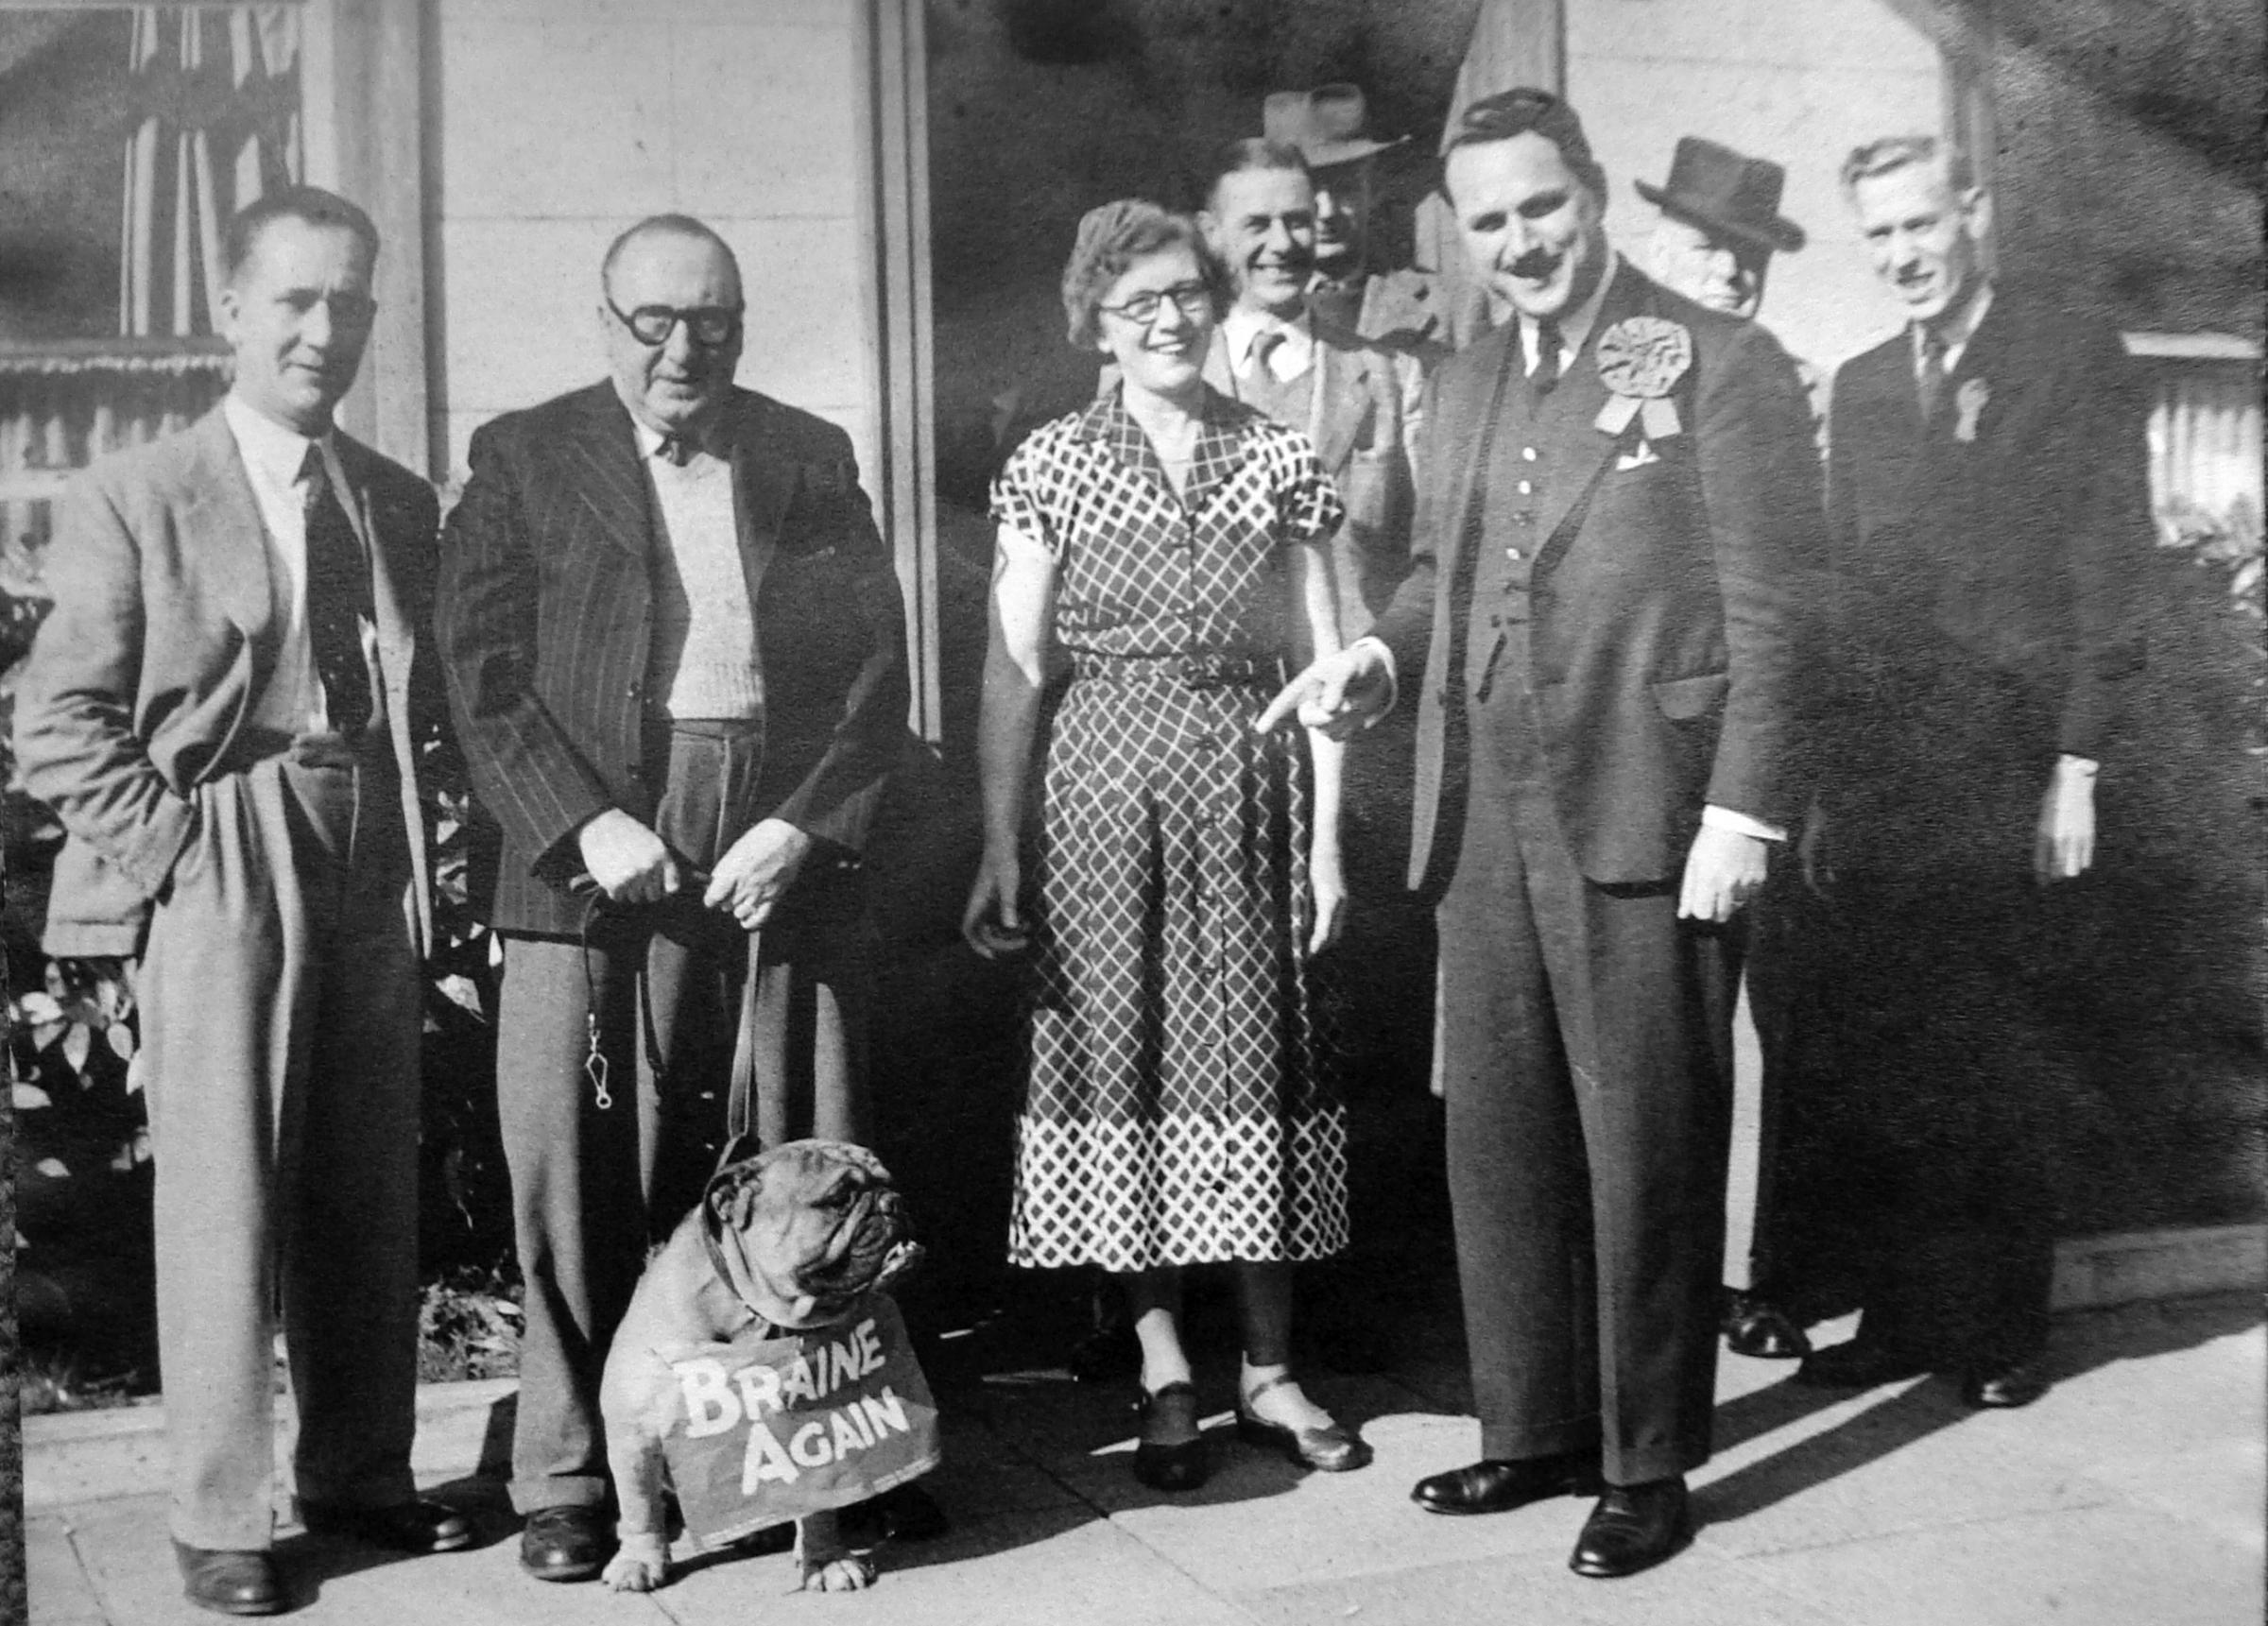 Together - Castle Point MP Sir Bernard Braine at the Red Lion with his bulldog mascot after the 1959 election